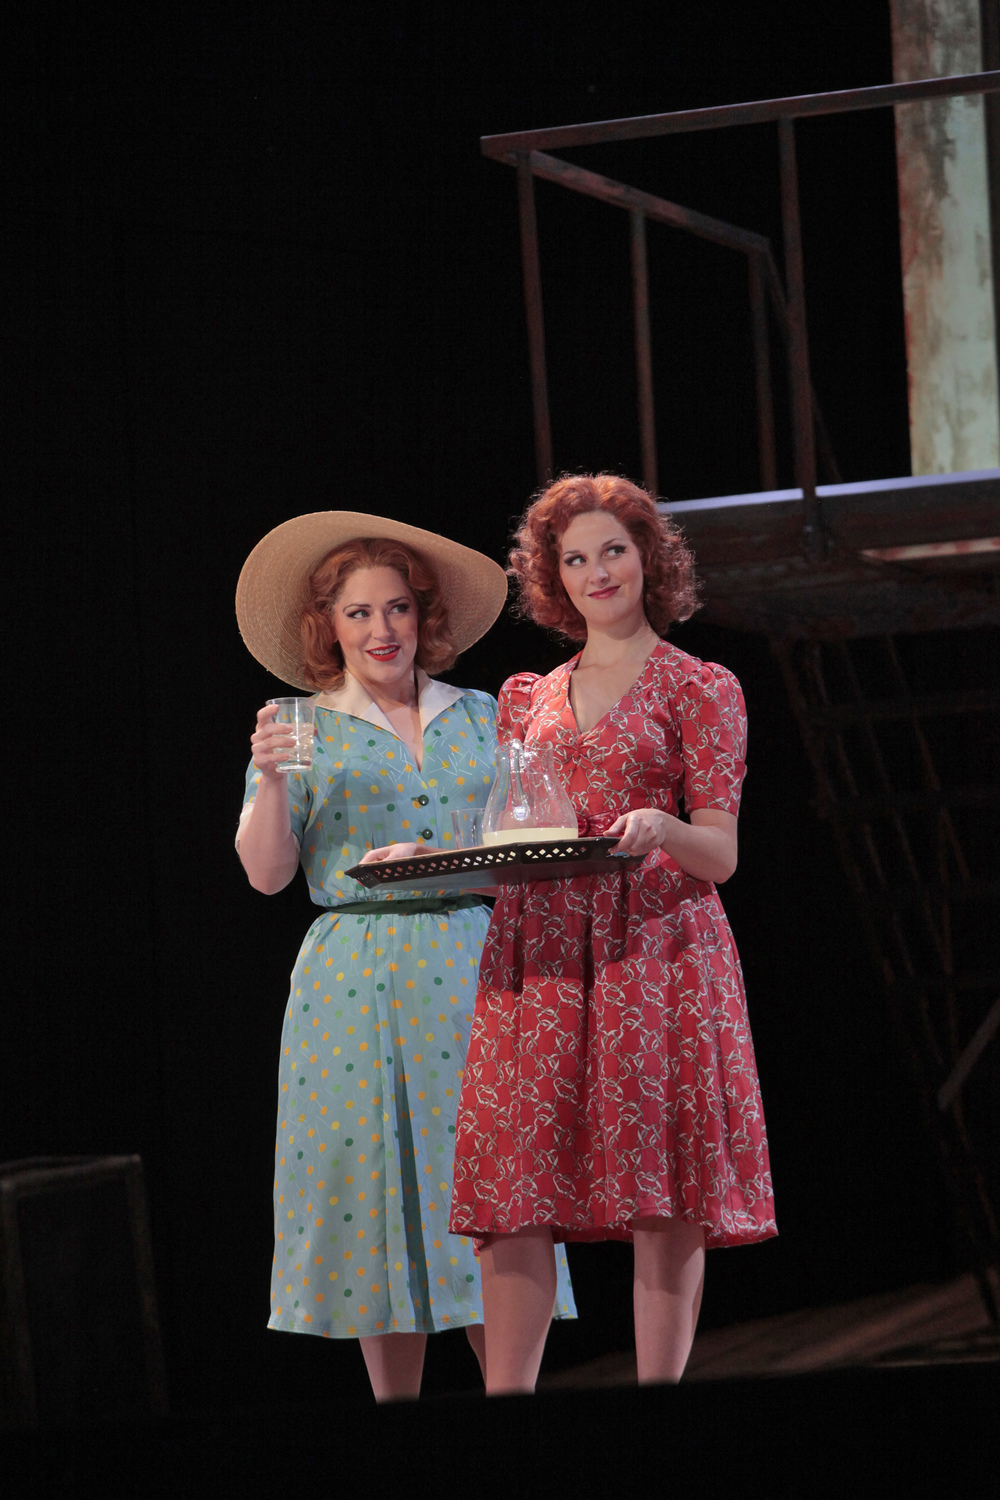 Gianetta  with Adina (Jennifer Black) in Donizetti's  L'elisir d'amore  at the Santa Fe Opera, 2009